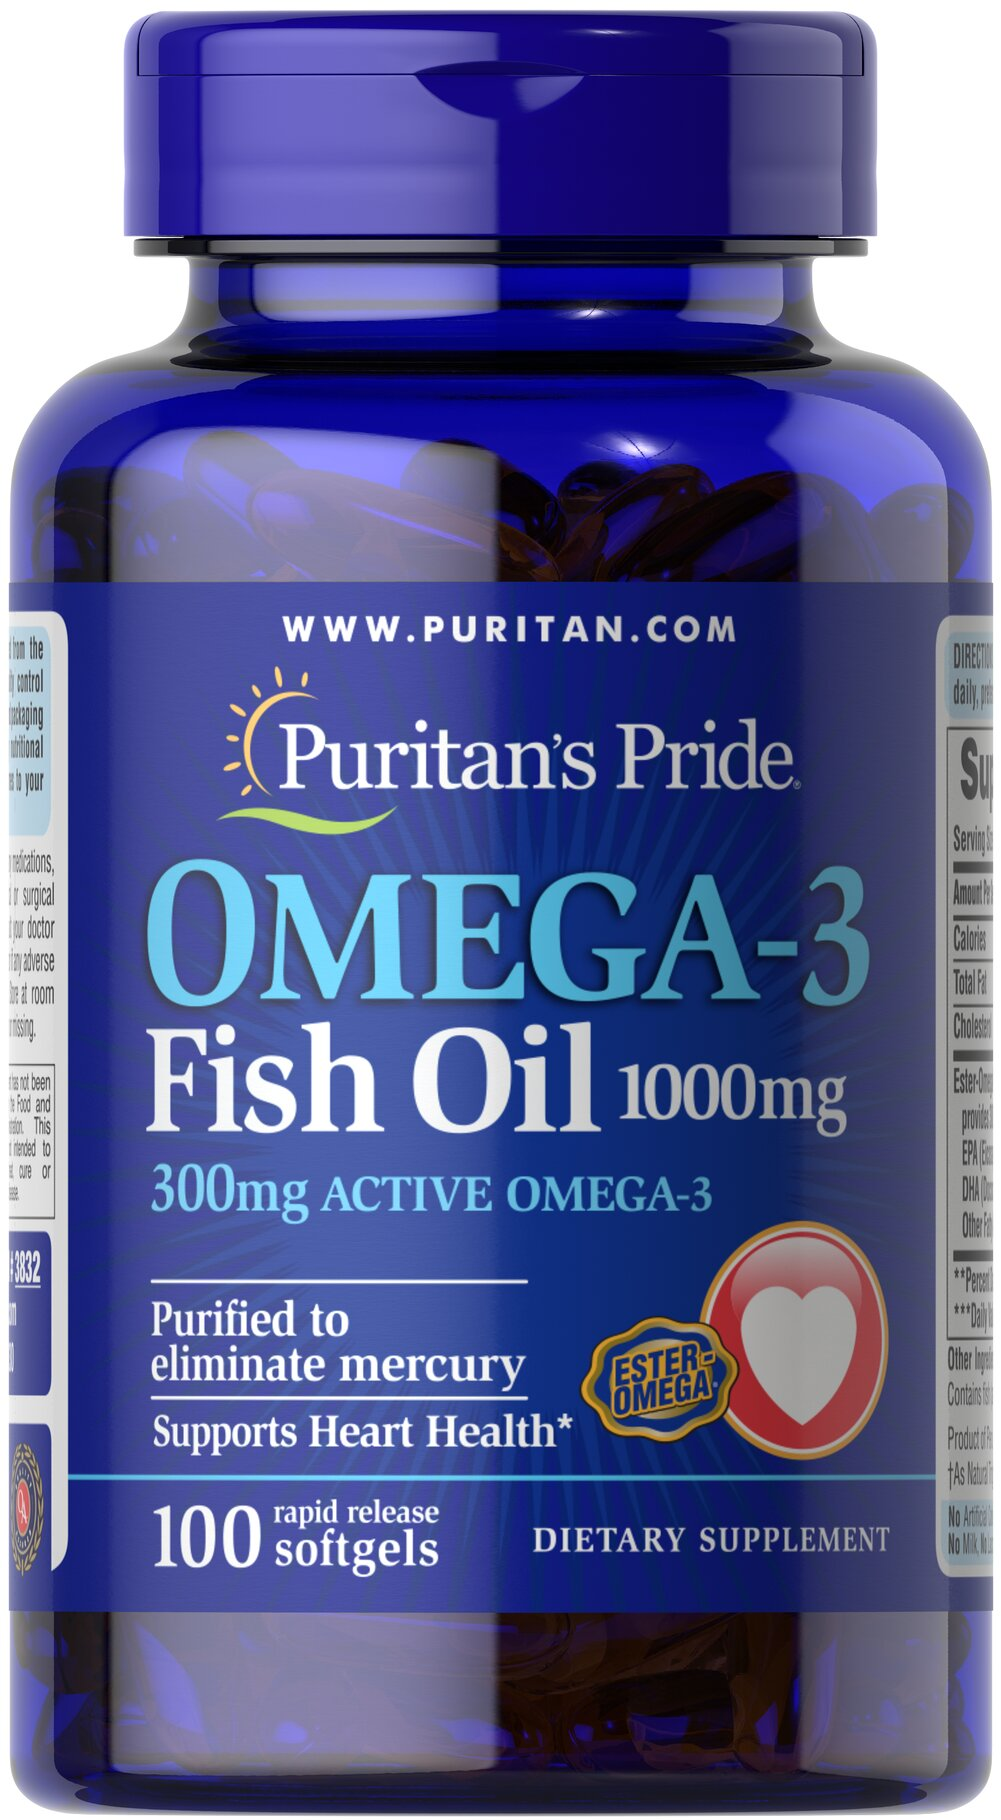 Omega 3 fish oil 1000 mg 300 mg active omega 3 100 for Advantages of fish oil